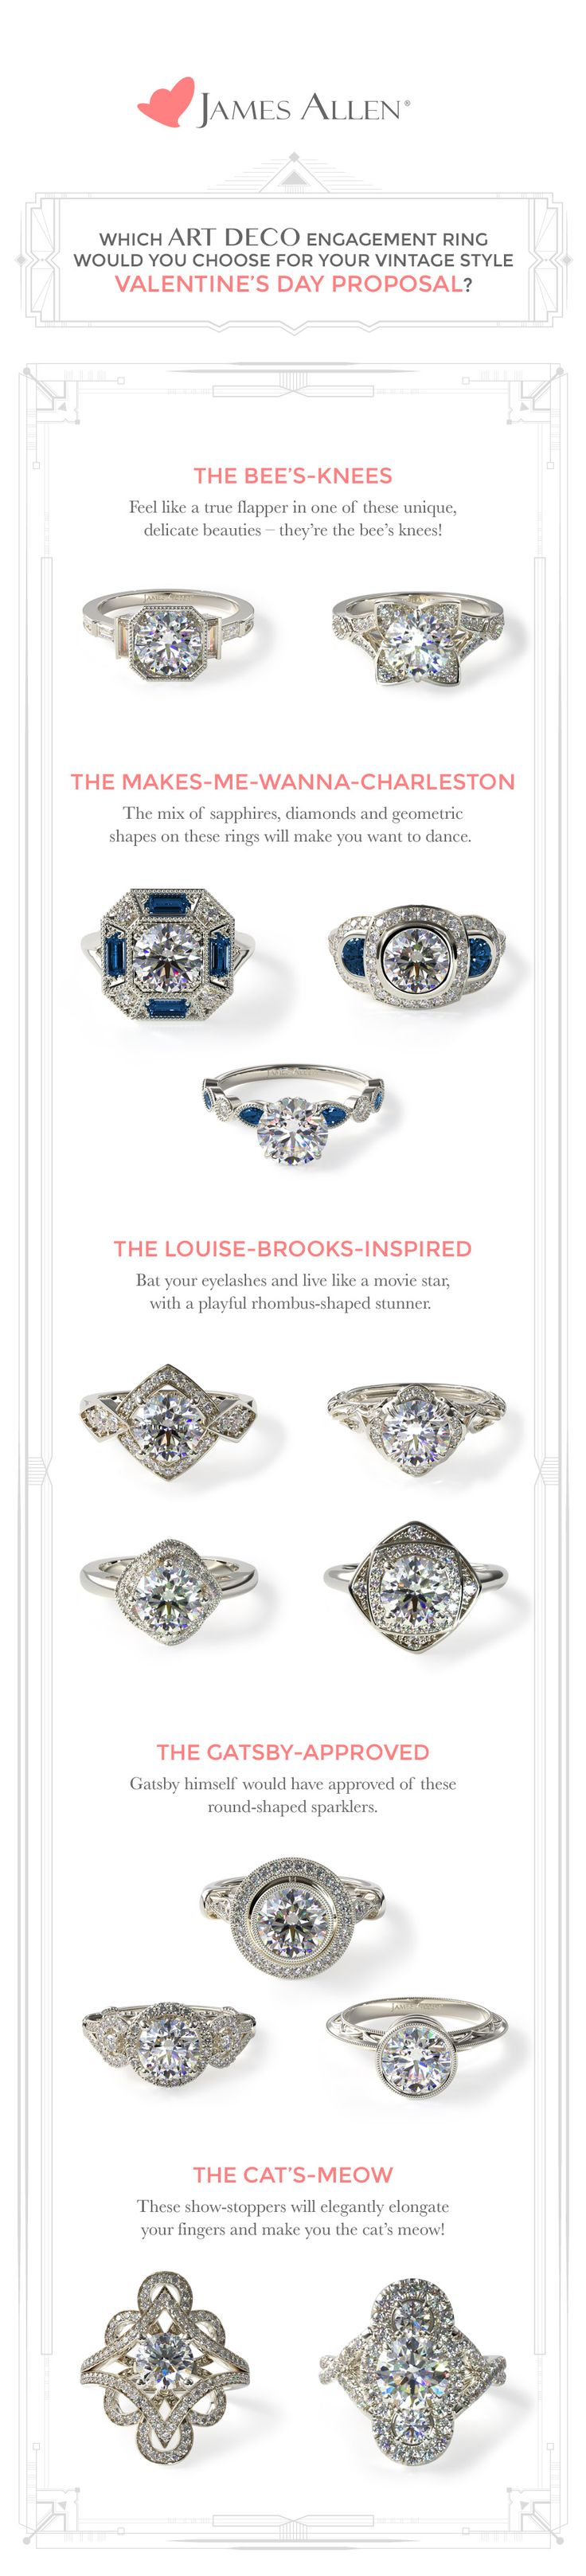 Which Jazz-Age inspired diamond engagement ring would you choose for your vintage style proposal this February 14th? Check out all the art deco rings in 360° on JamesAllen.com !  #jamesallenrings